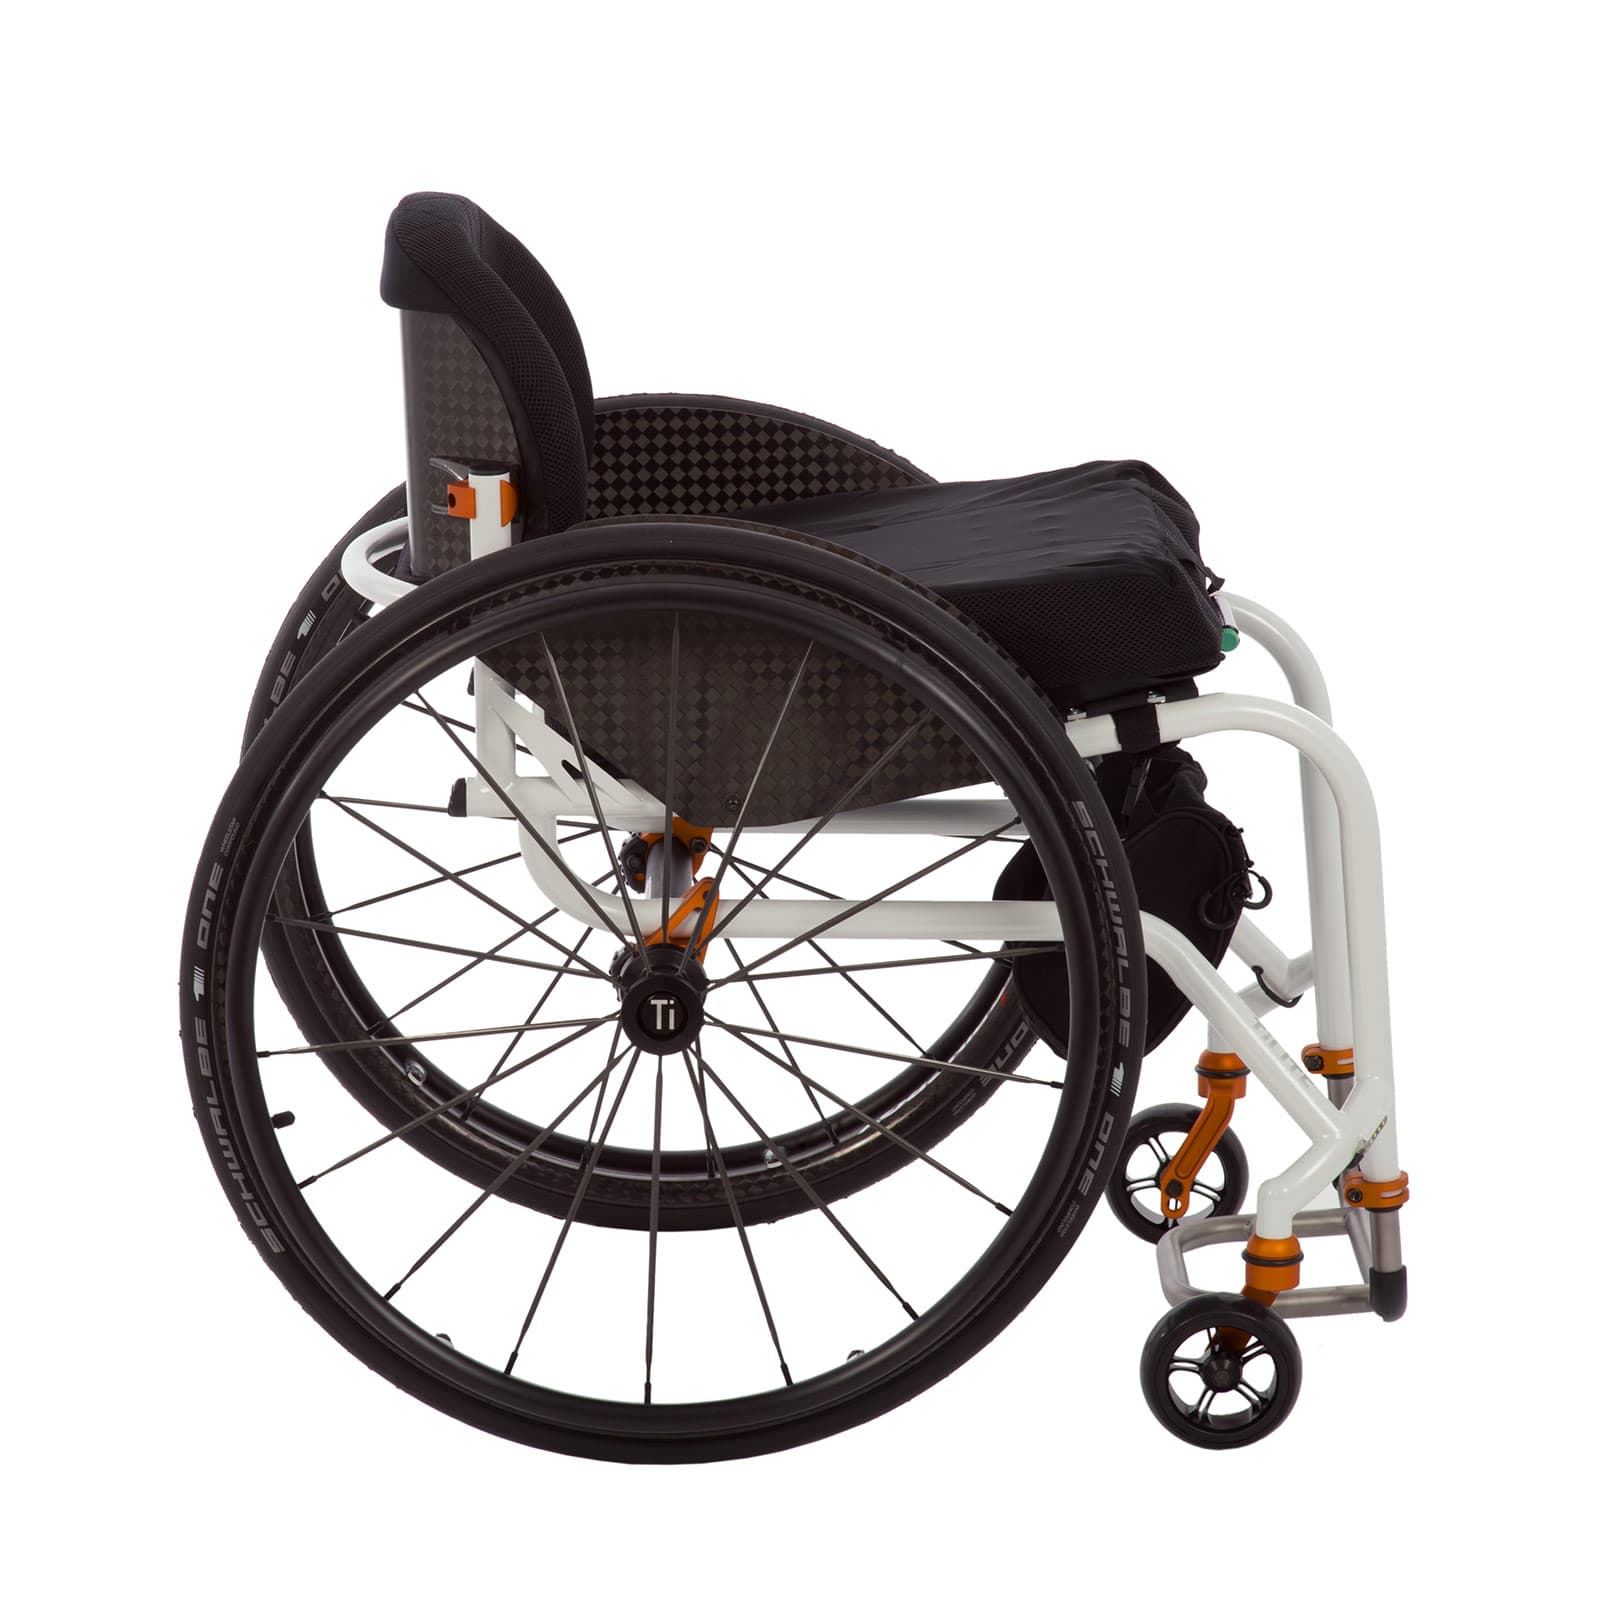 TiLite TR Rigid Titanium Wheelchair FREE SHIPPING How iRoll Sports